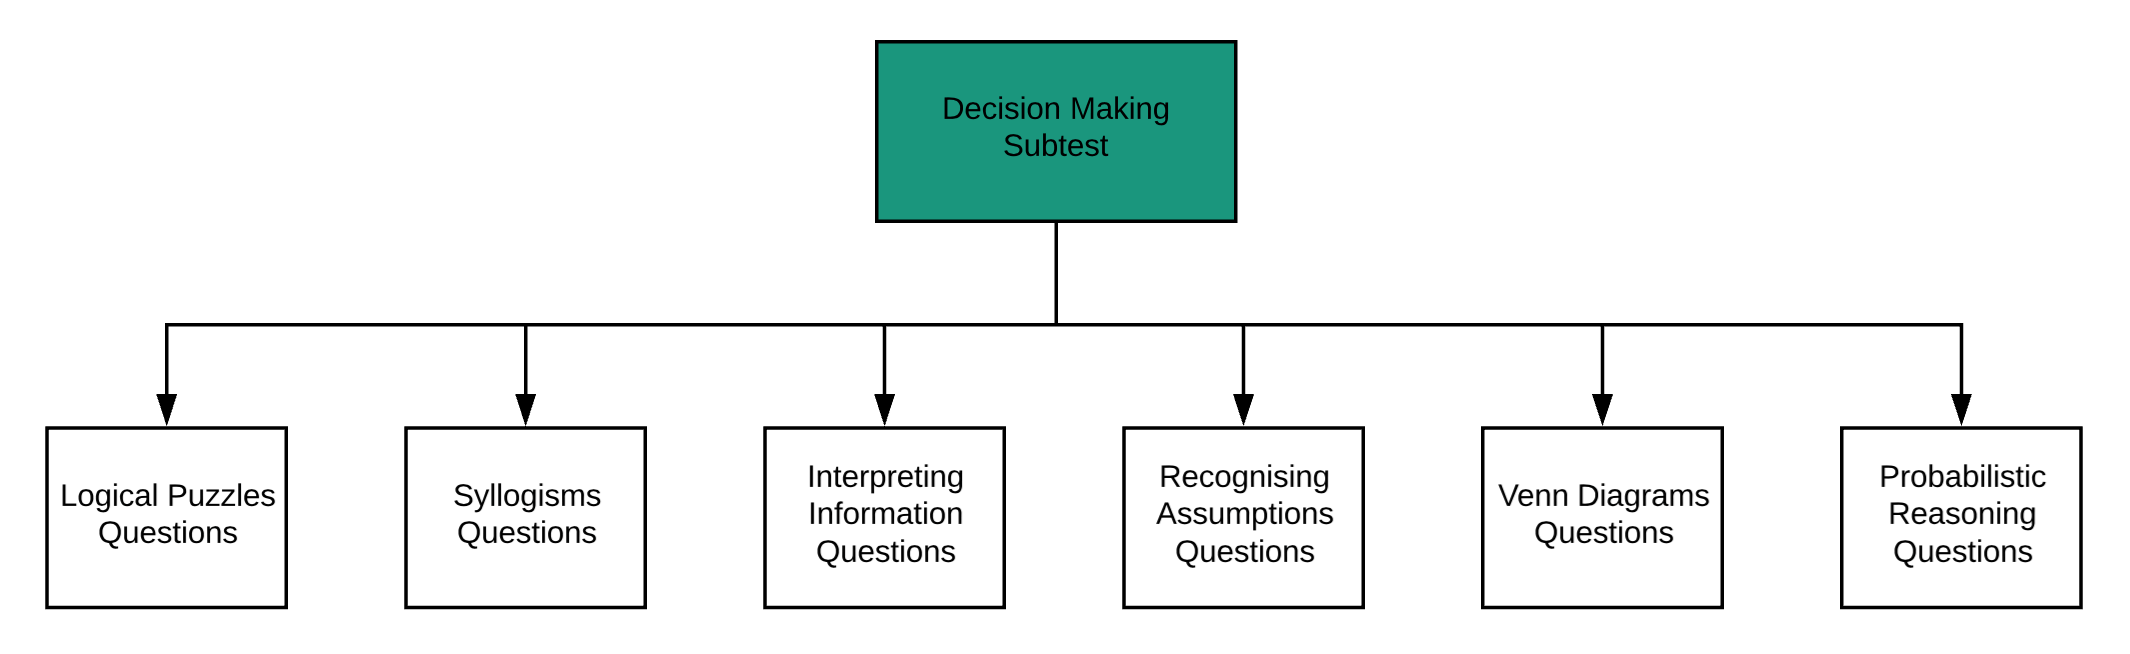 Ucat Guide Part 2 How To Study For Decision Making Matrix Education